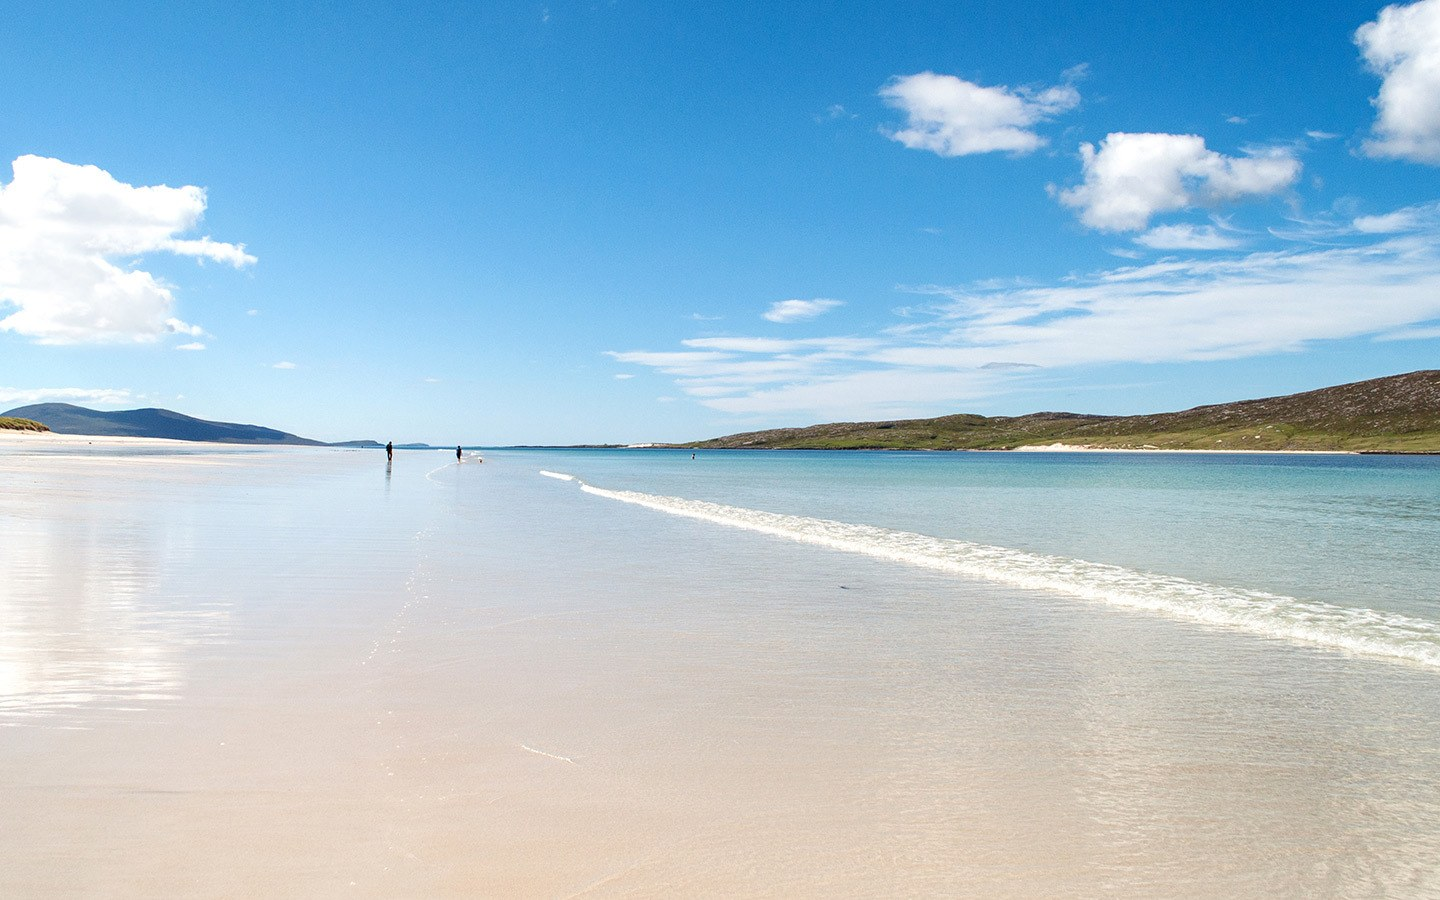 The stunning white sands of Luskentyre Beach on the Isle of Harris, Outer Hebrides